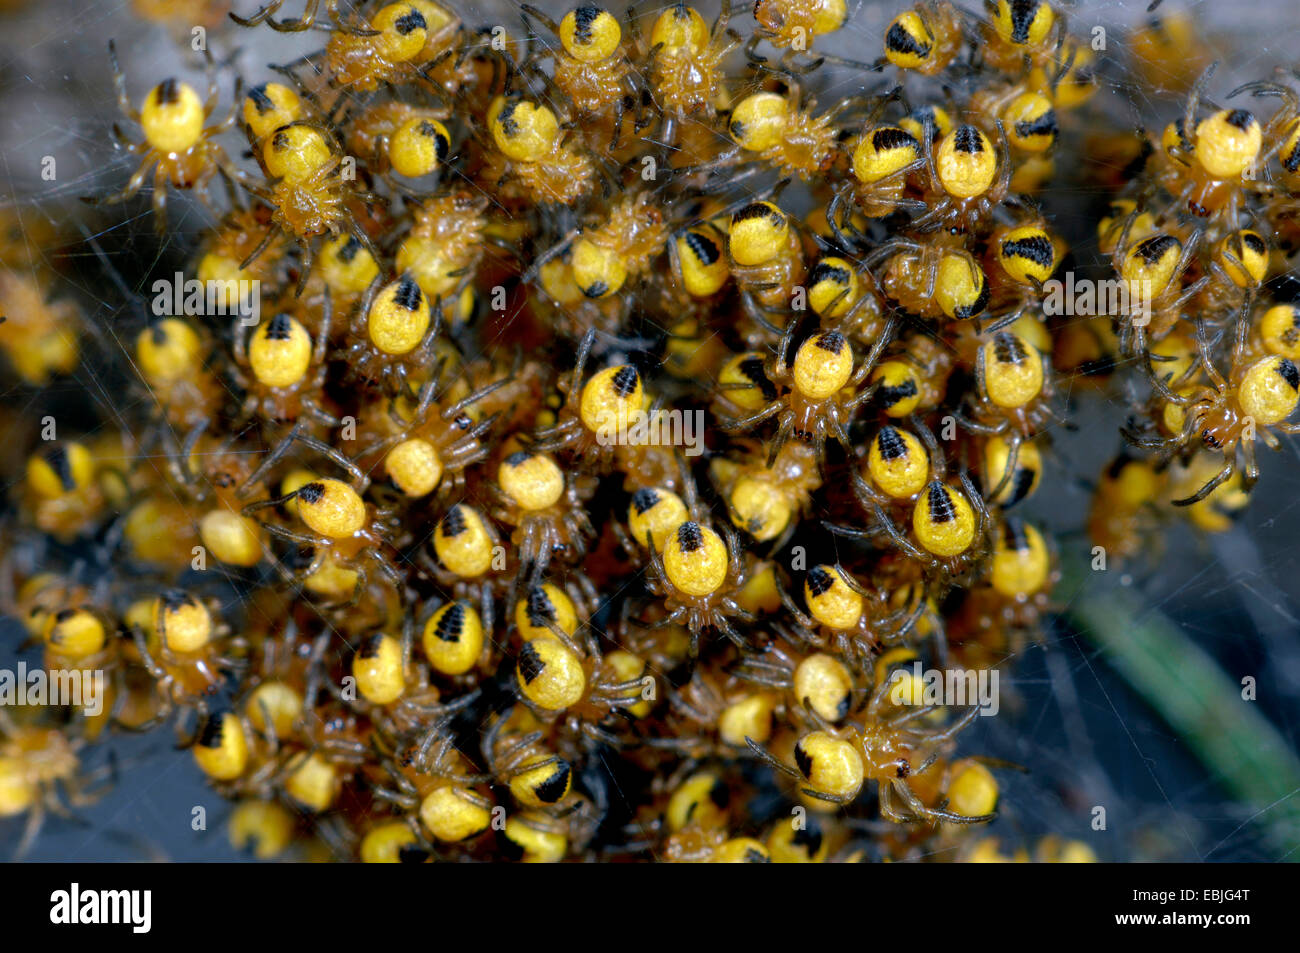 M Of Spiders Stock Photos & M Of Spiders Stock Images - Alamy